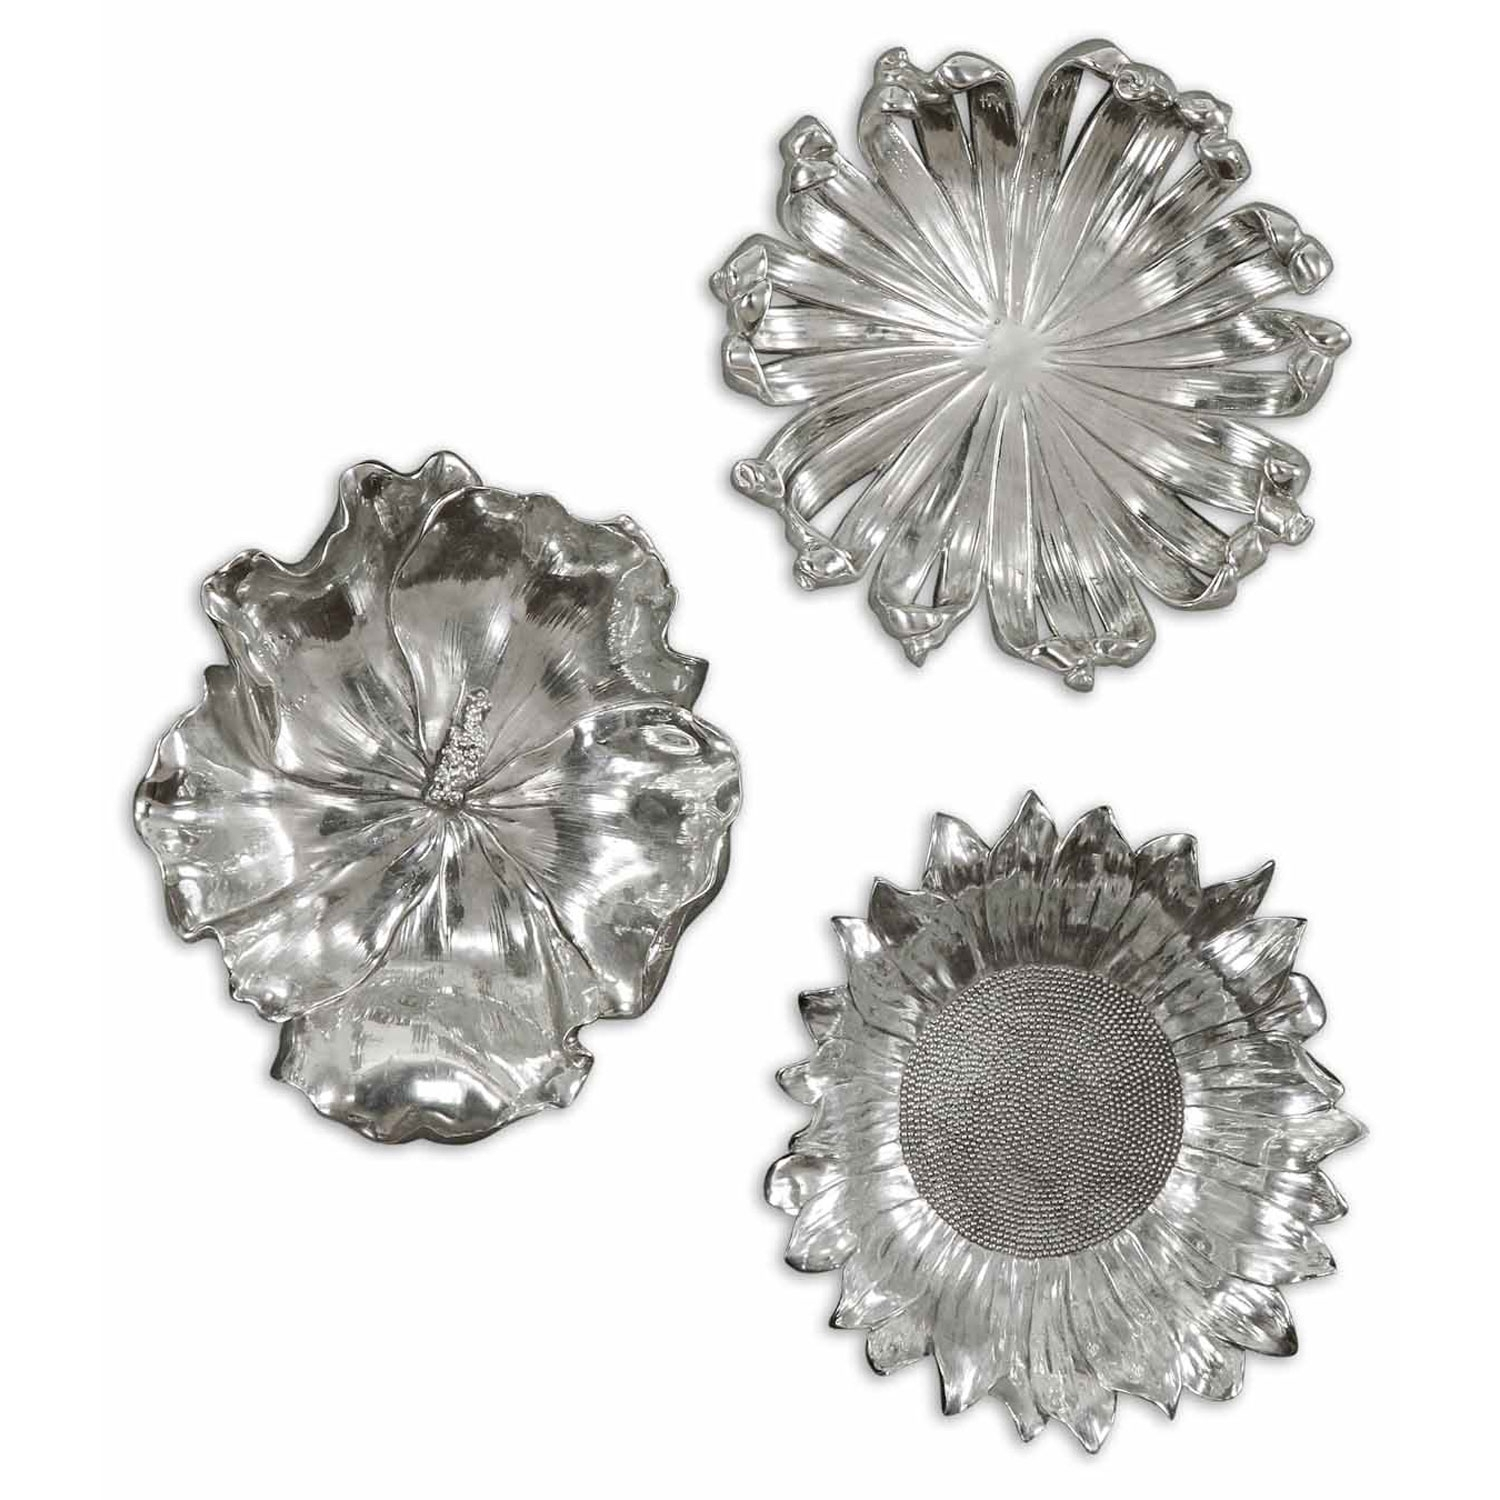 Uttermost Silver Flowers Metal Wall Art, Set Of Three 08503 | Bellacor With Regard To Most Current Metal Flowers Wall Art (View 19 of 20)